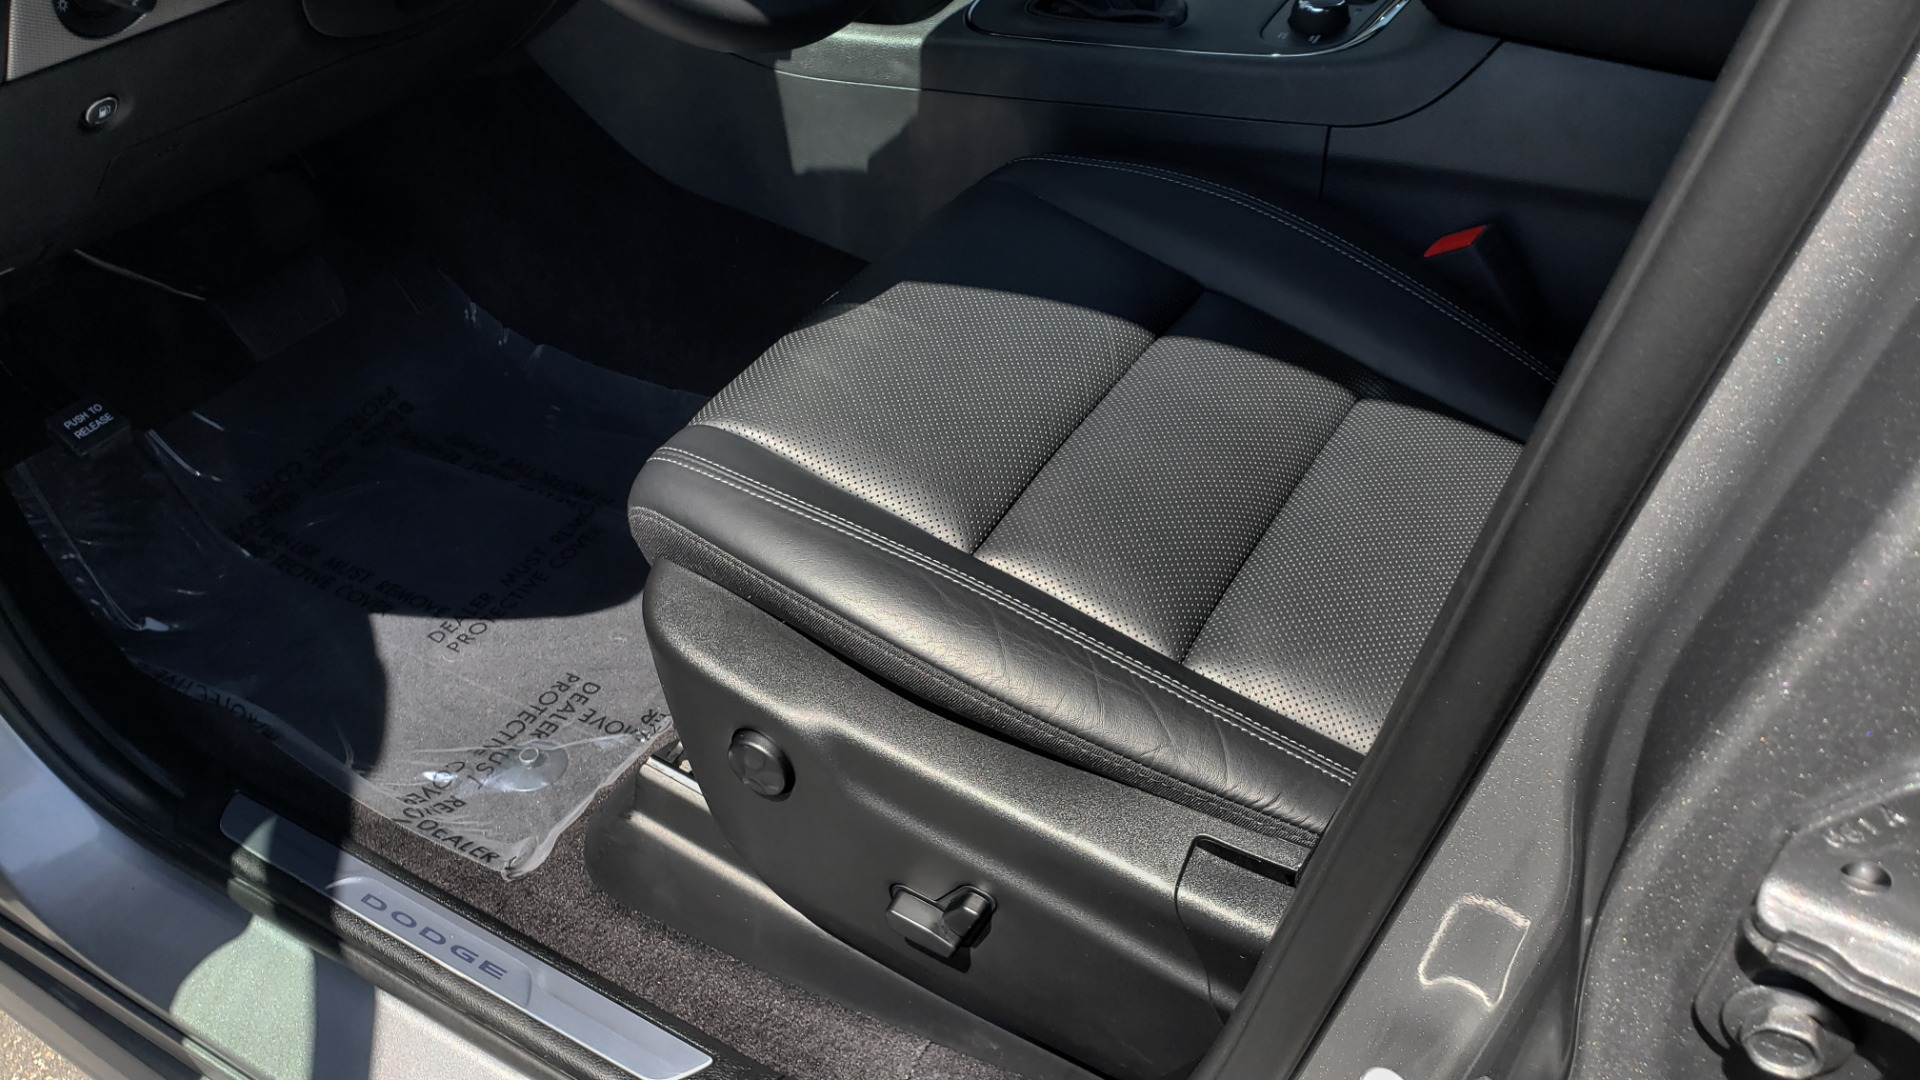 Used 2019 Dodge DURANGO R/T BLACKTOP AWD / TECH / ADAPT CRUS / TOW GROUP / SUNROOF / REARVIEW for sale Sold at Formula Imports in Charlotte NC 28227 39